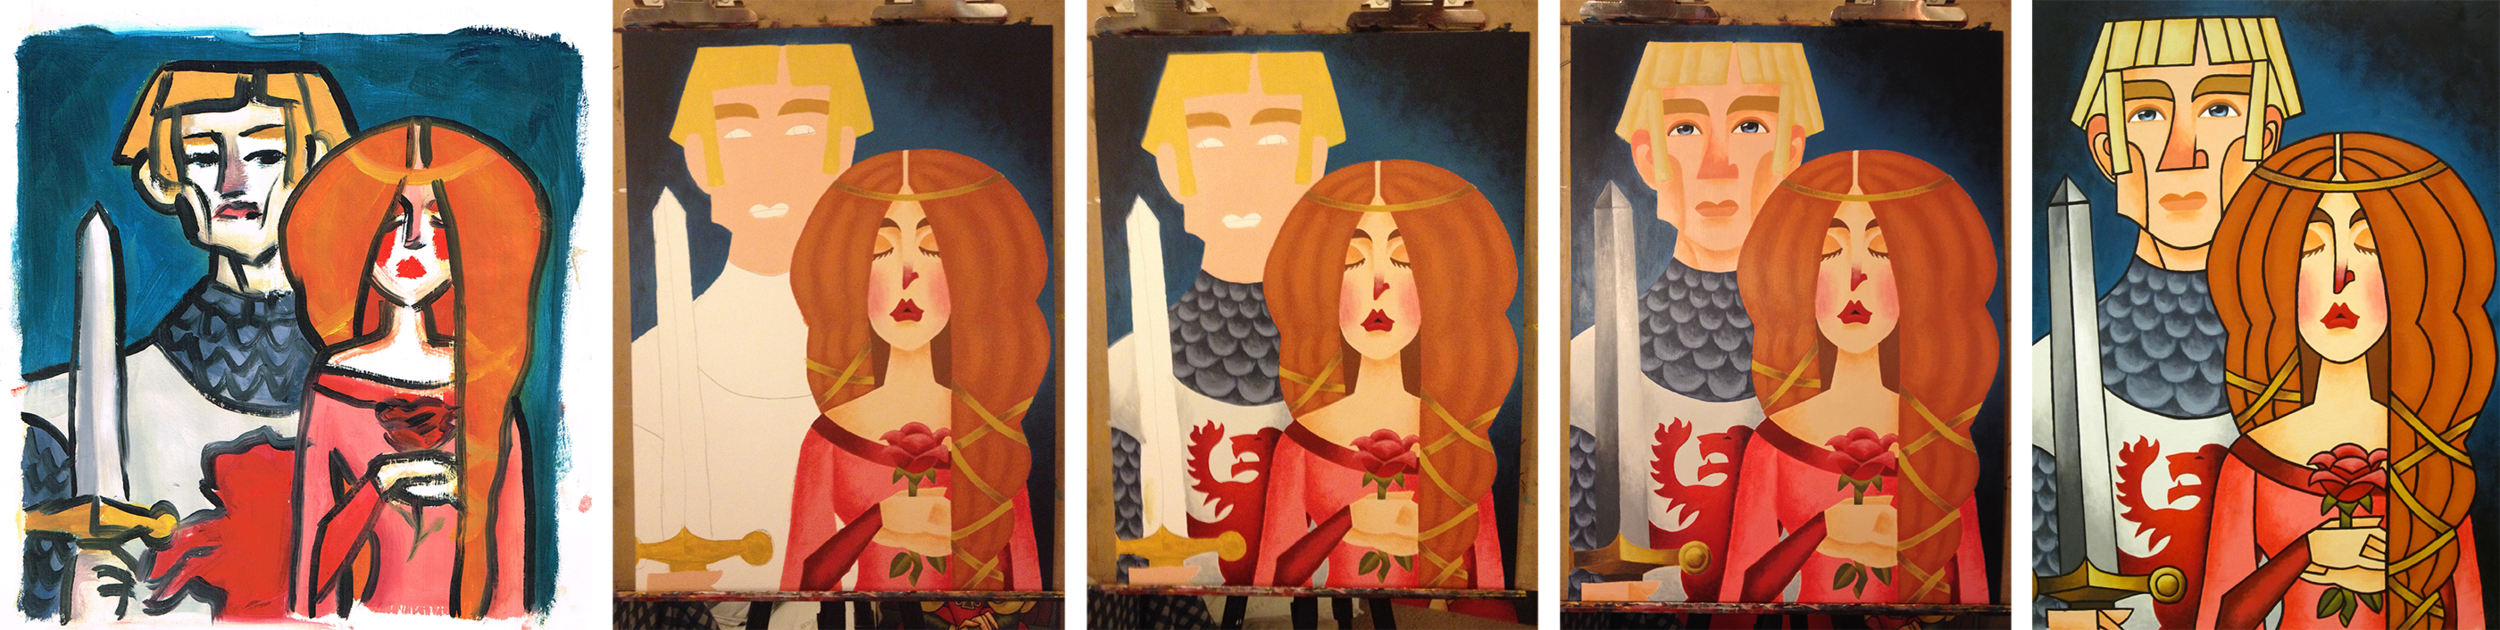 knight-damsel-painting-process